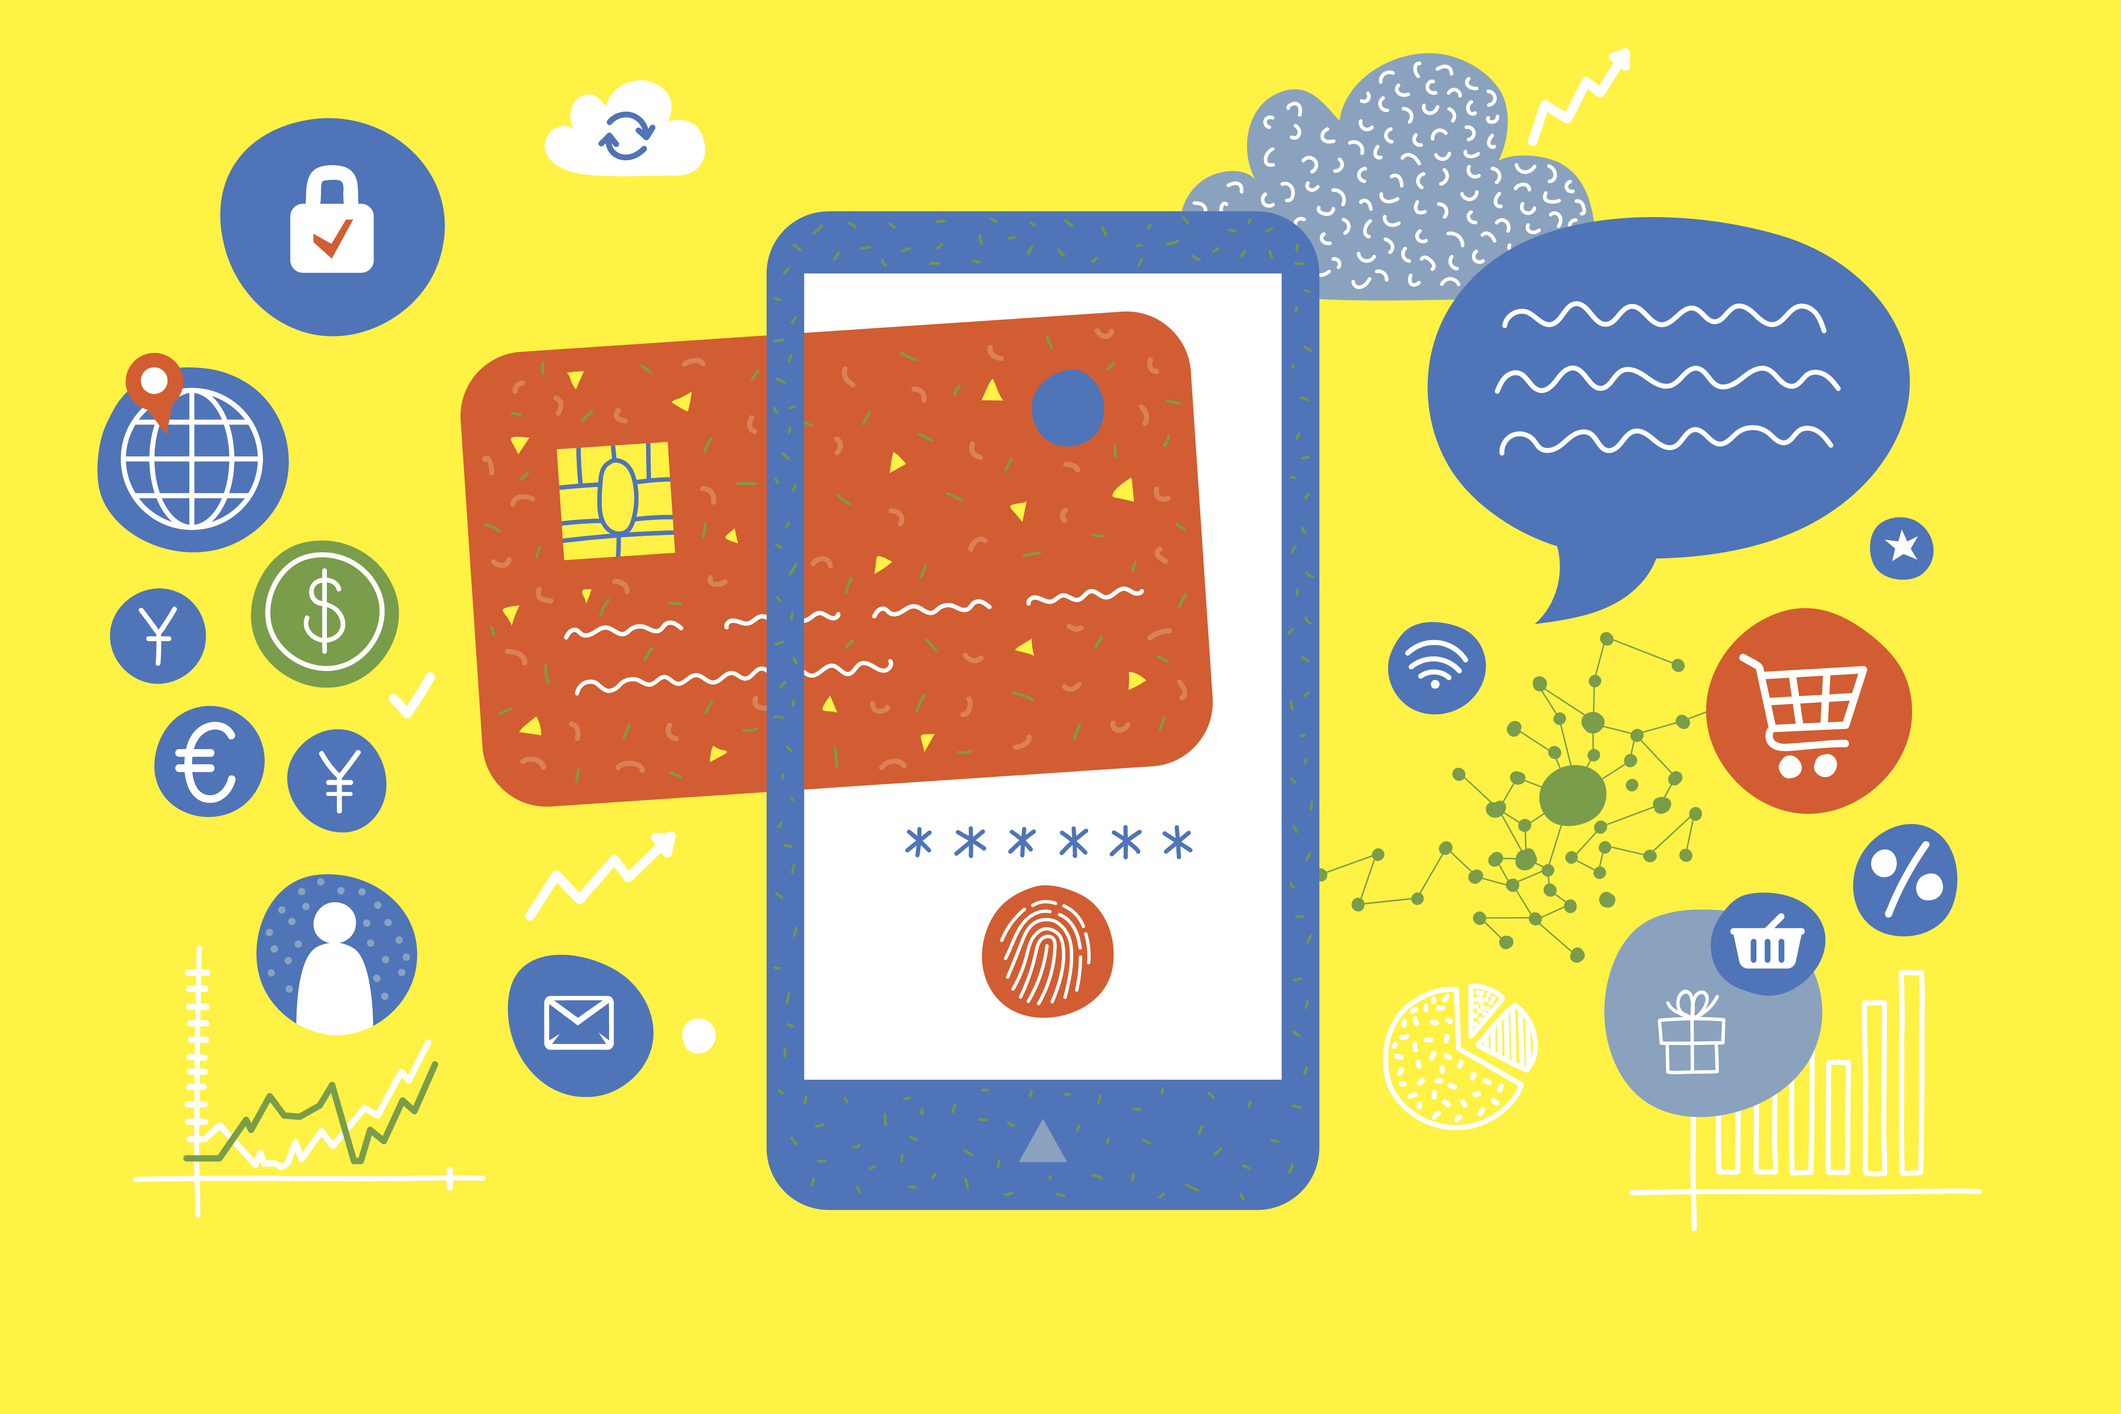 An abstract illustration of a phone with a credit card and various icons for shopping and travel.